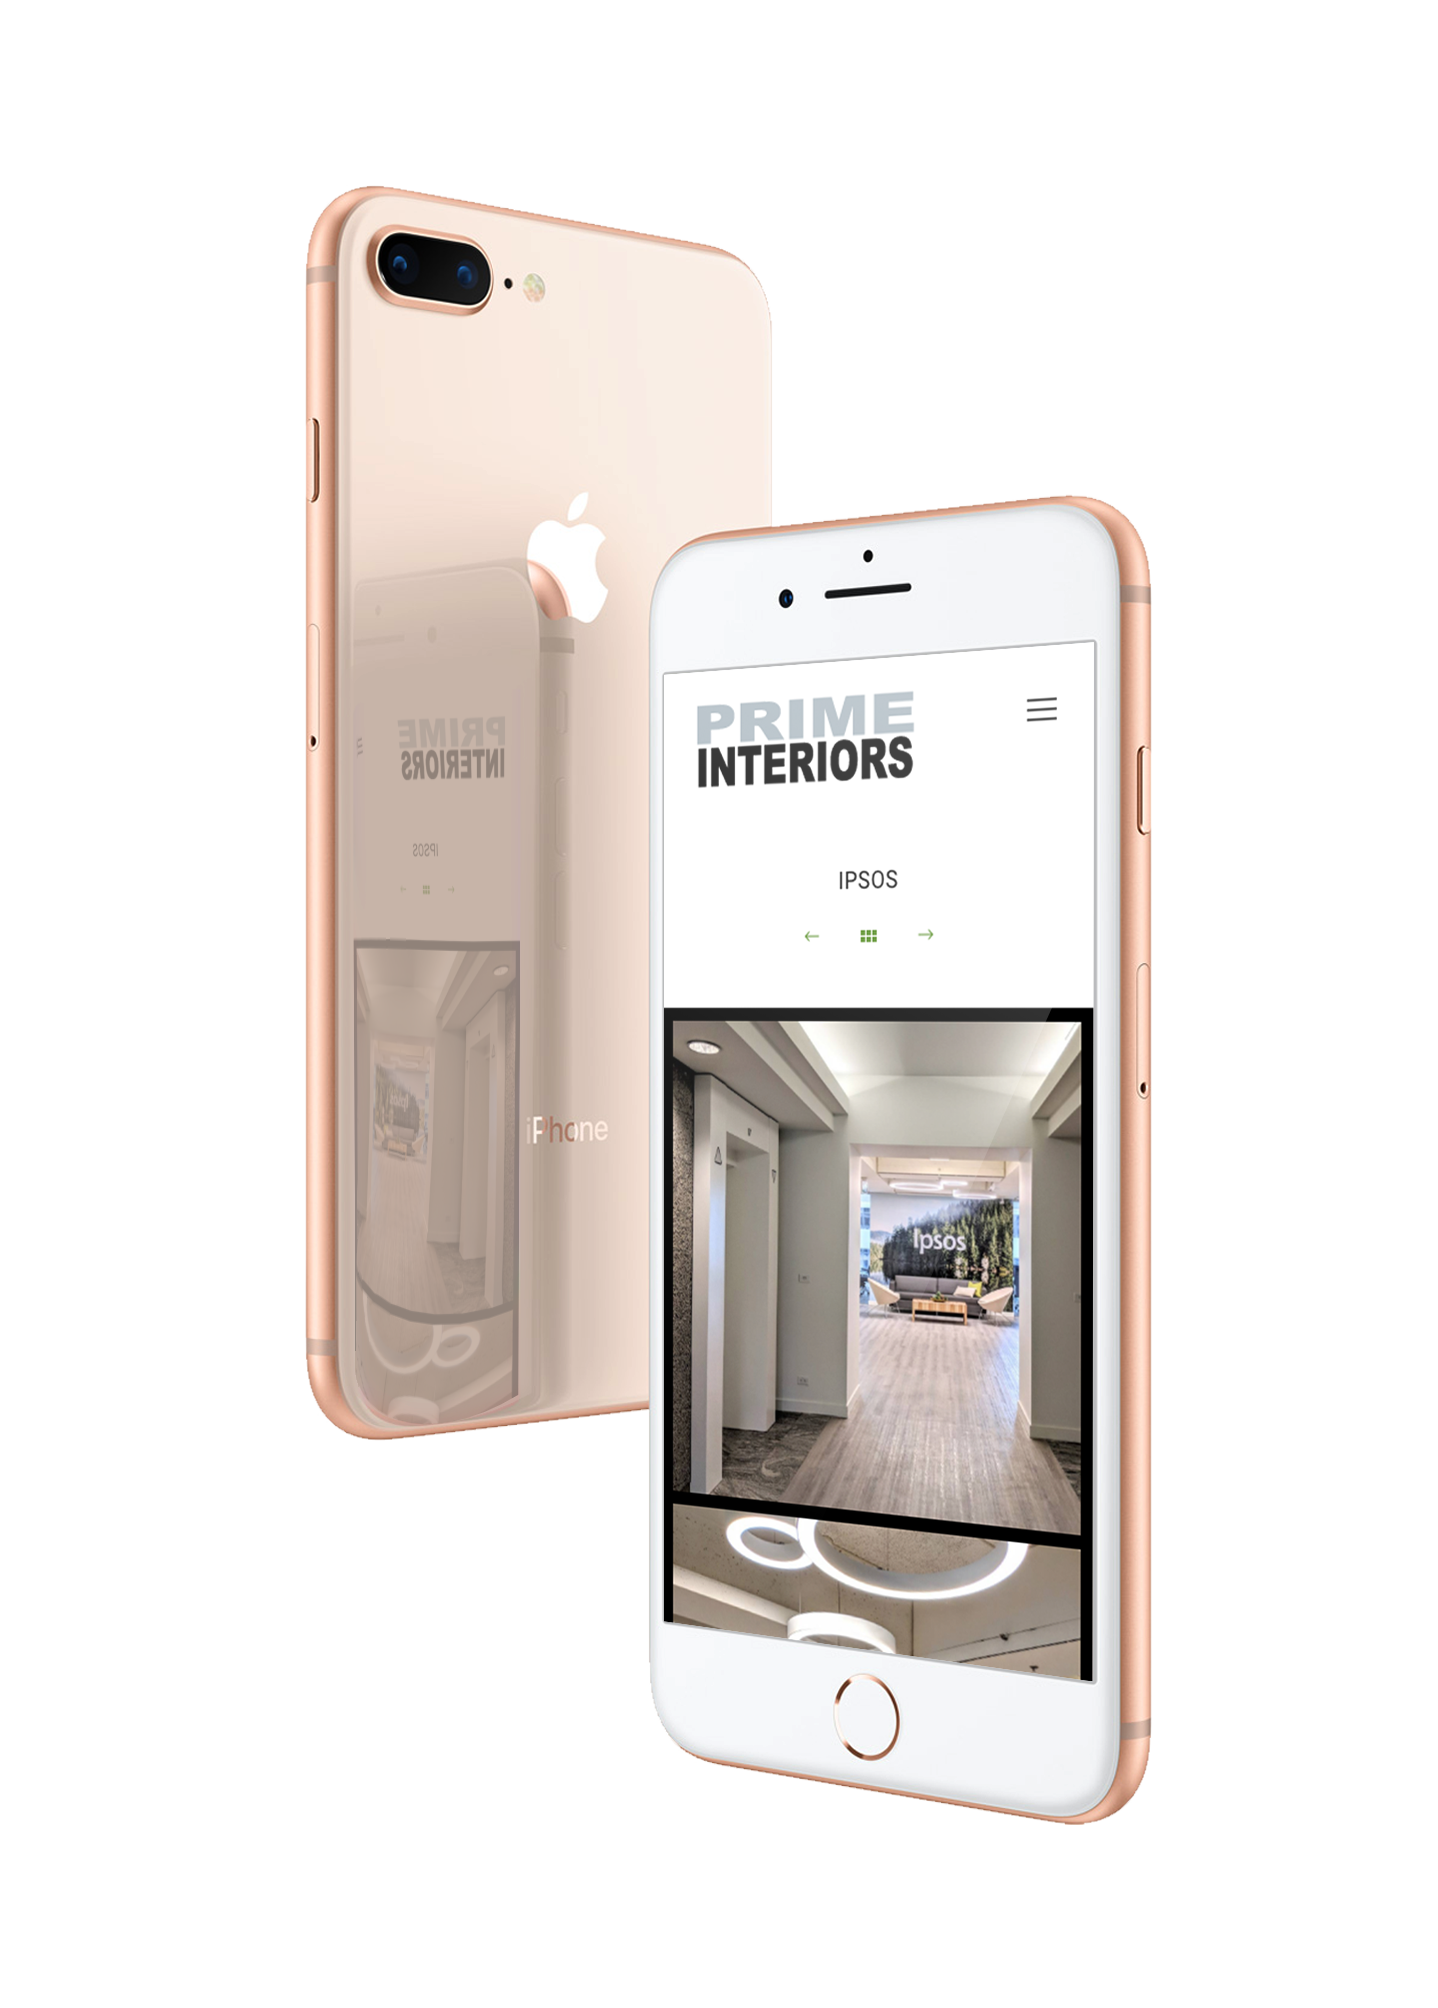 Prime Interiors Project on Iphone